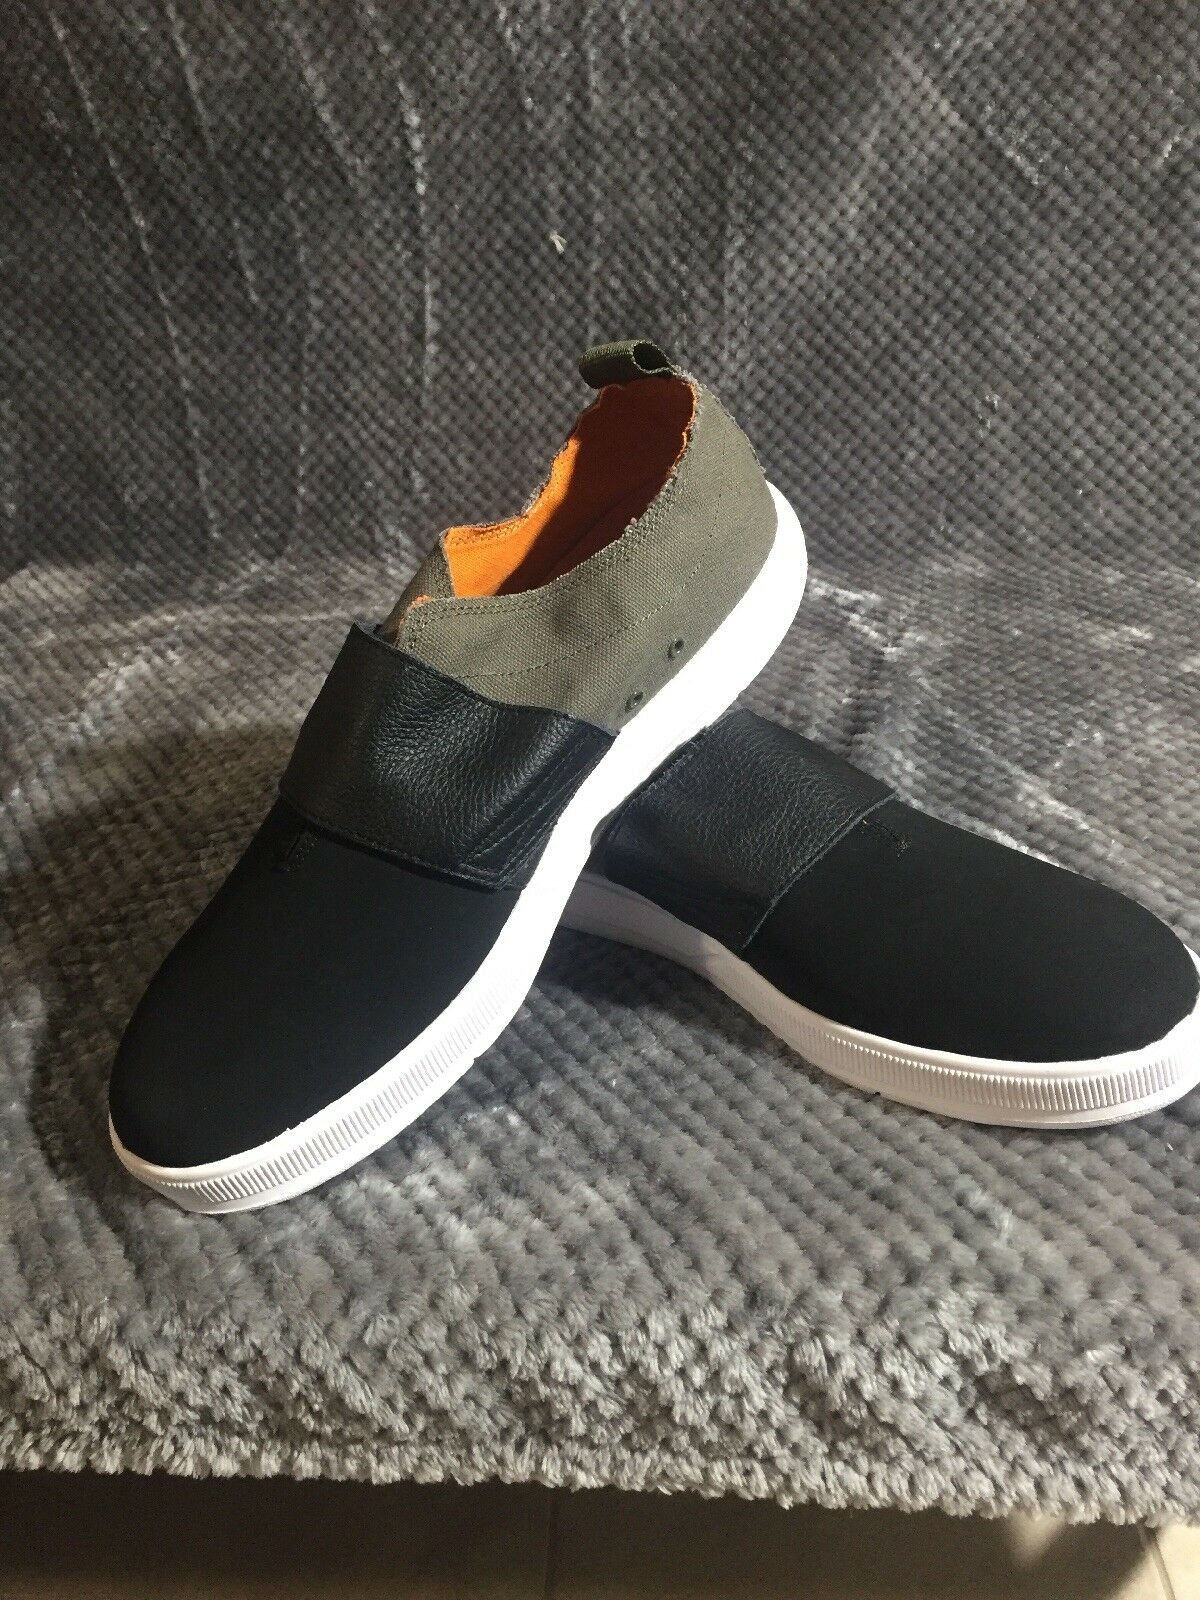 New Puma shoes For Men Size 12